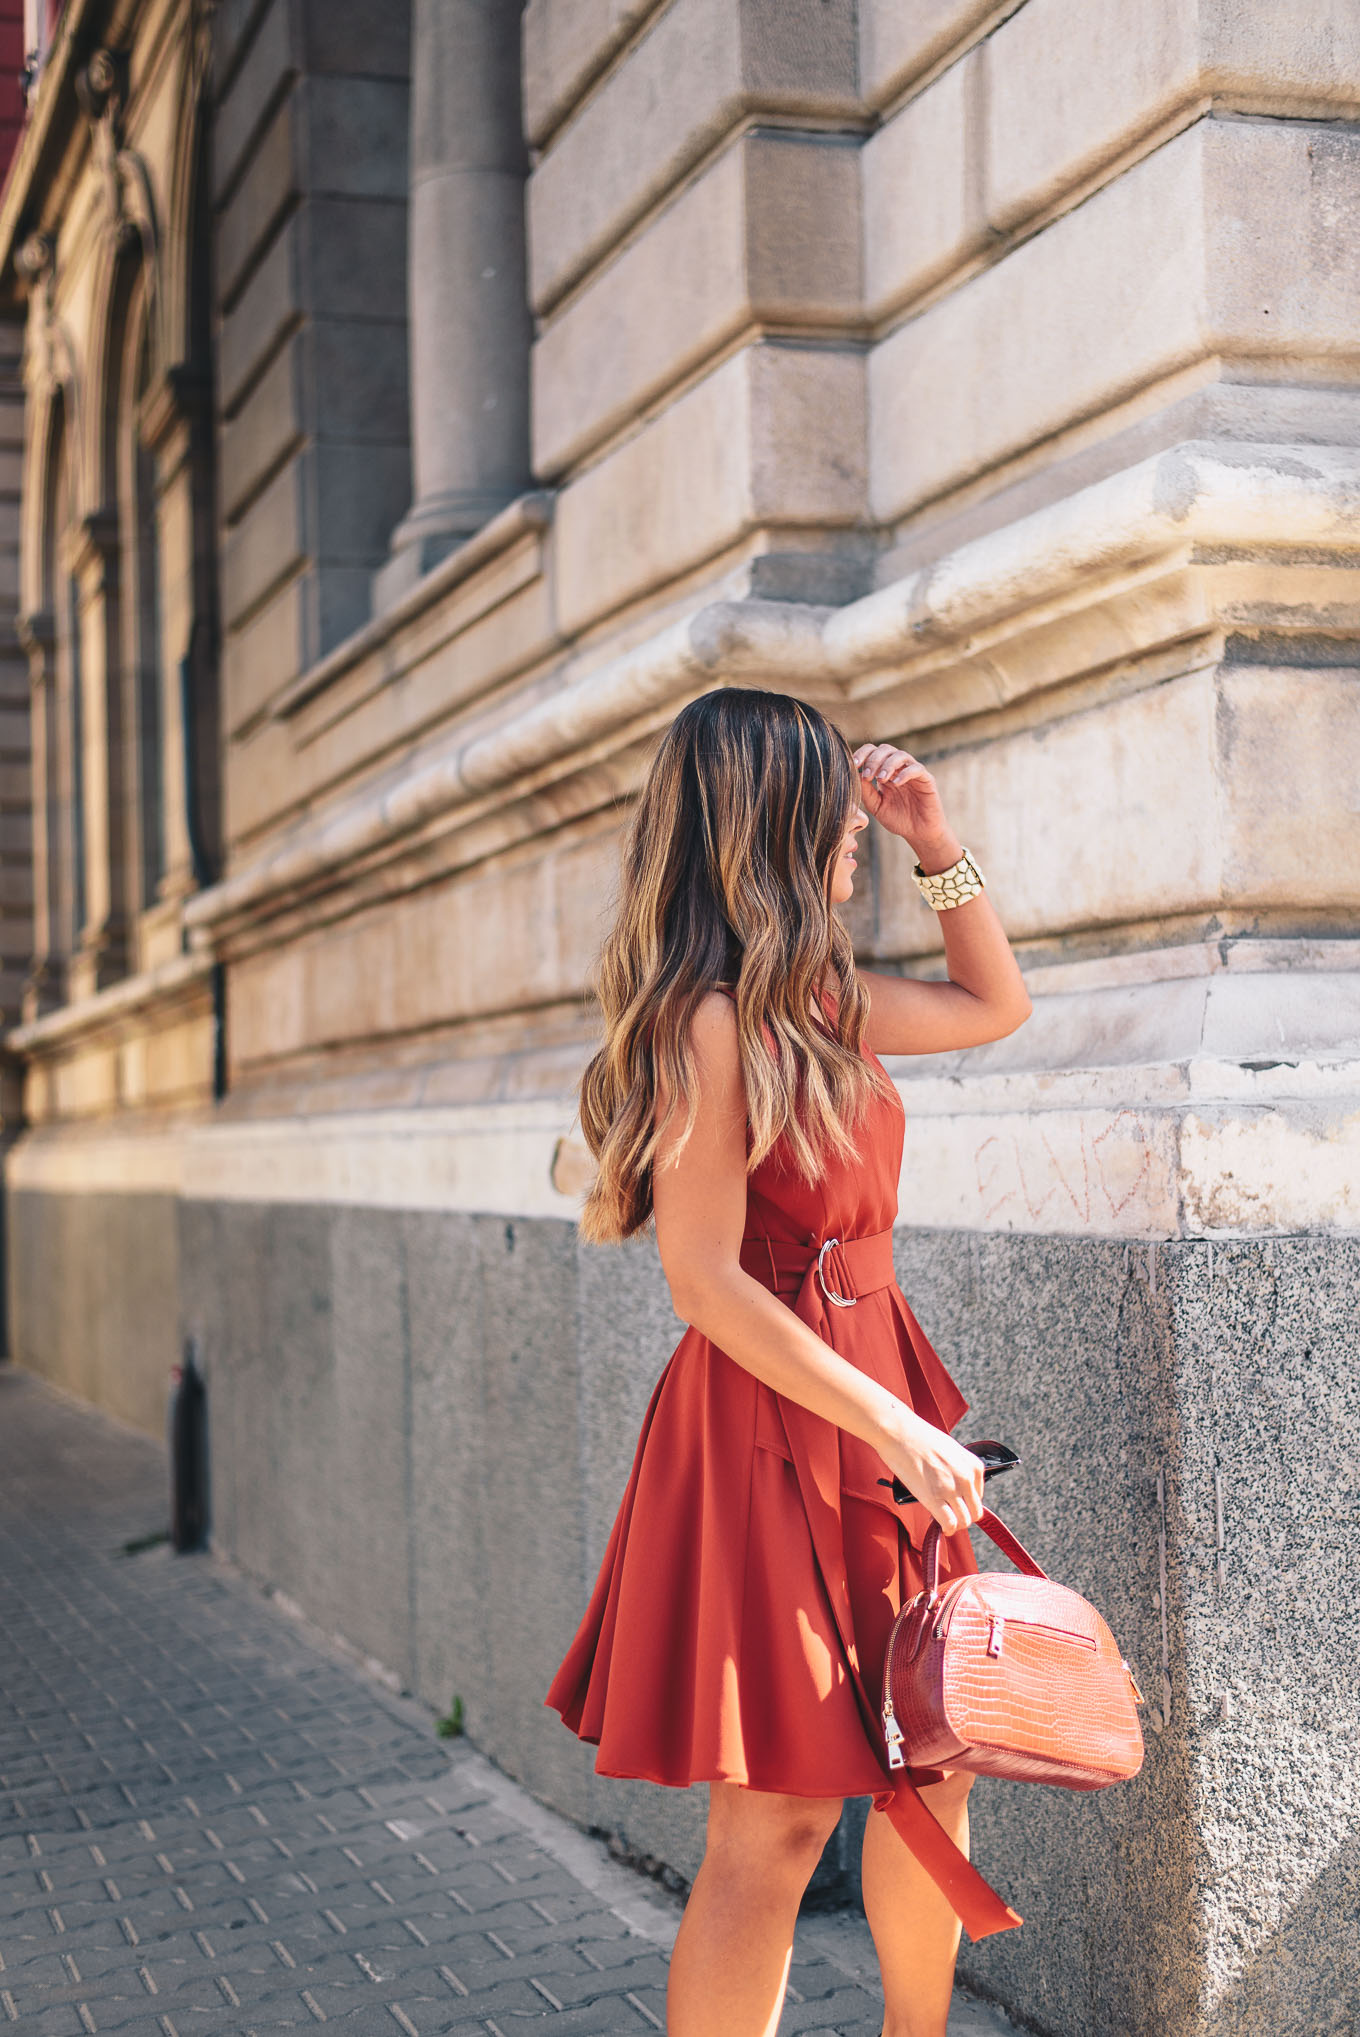 wearing a red dress in the city